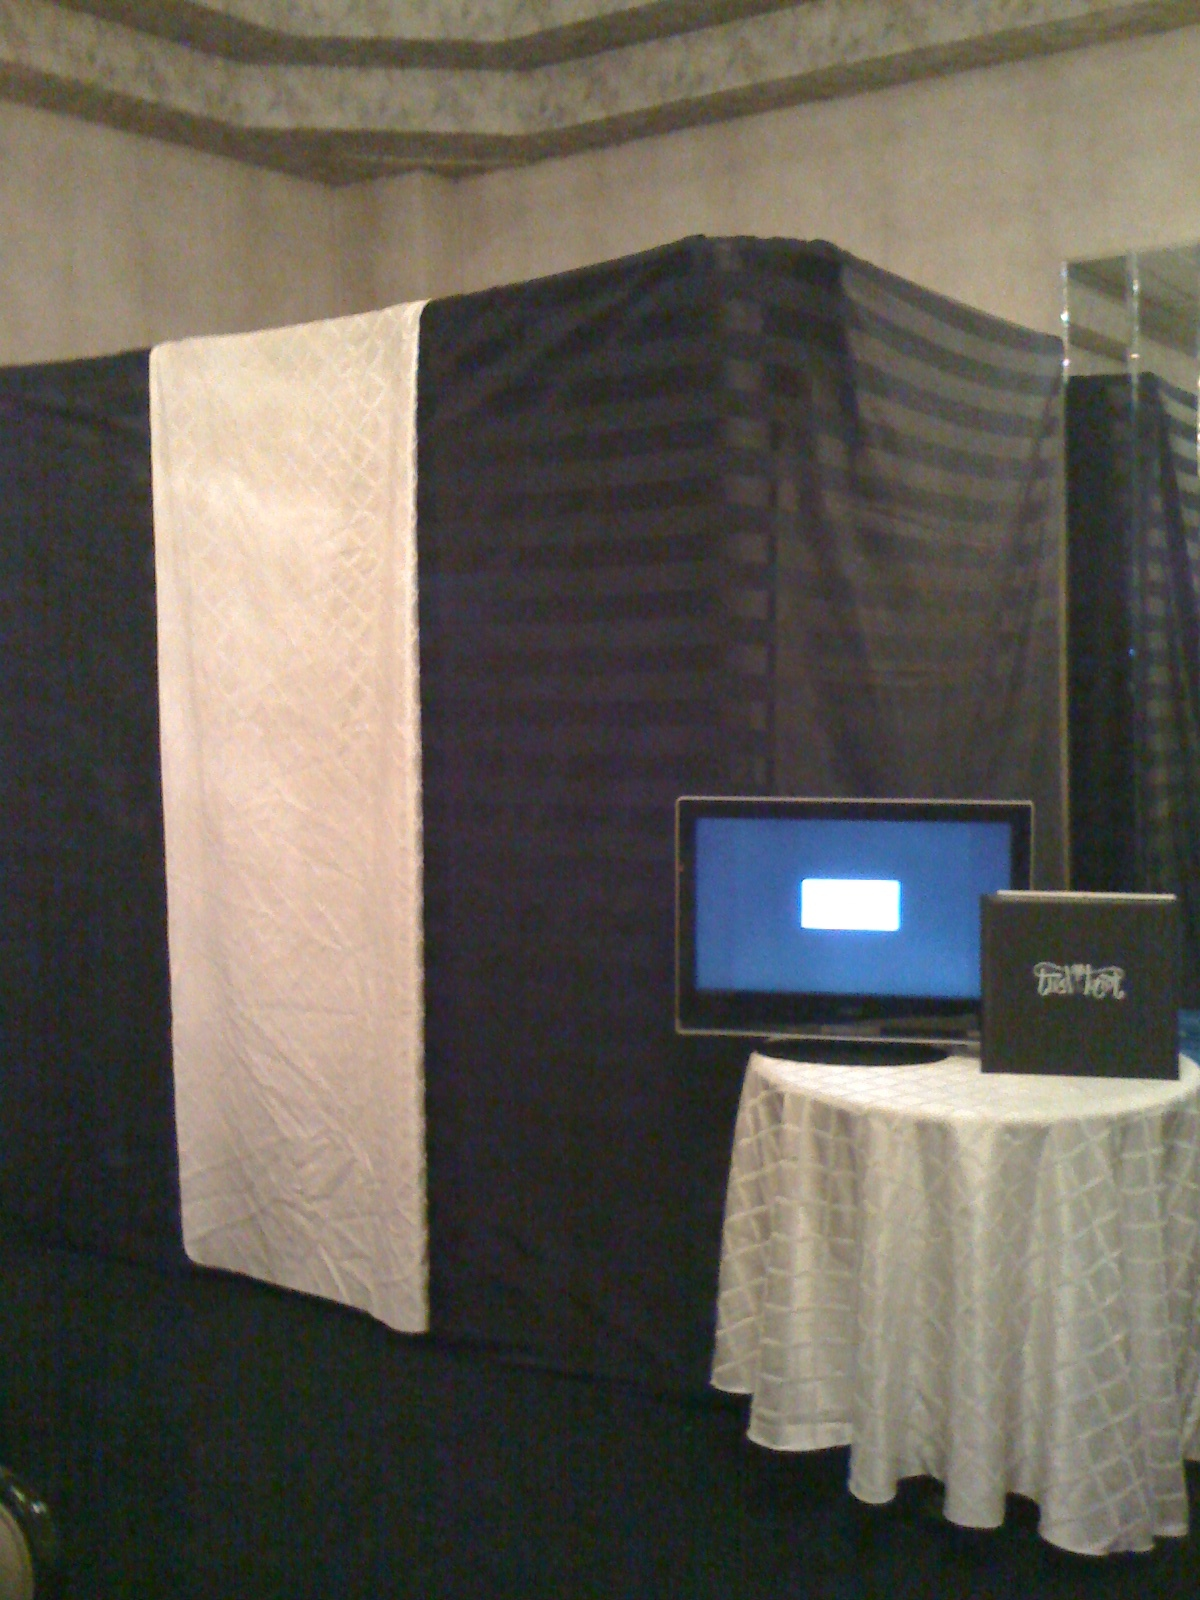 Favors & Gifts, Favors, Wedding, Booth, Fun, Photo, Rental, For, Rent, Booths, Scott roth events